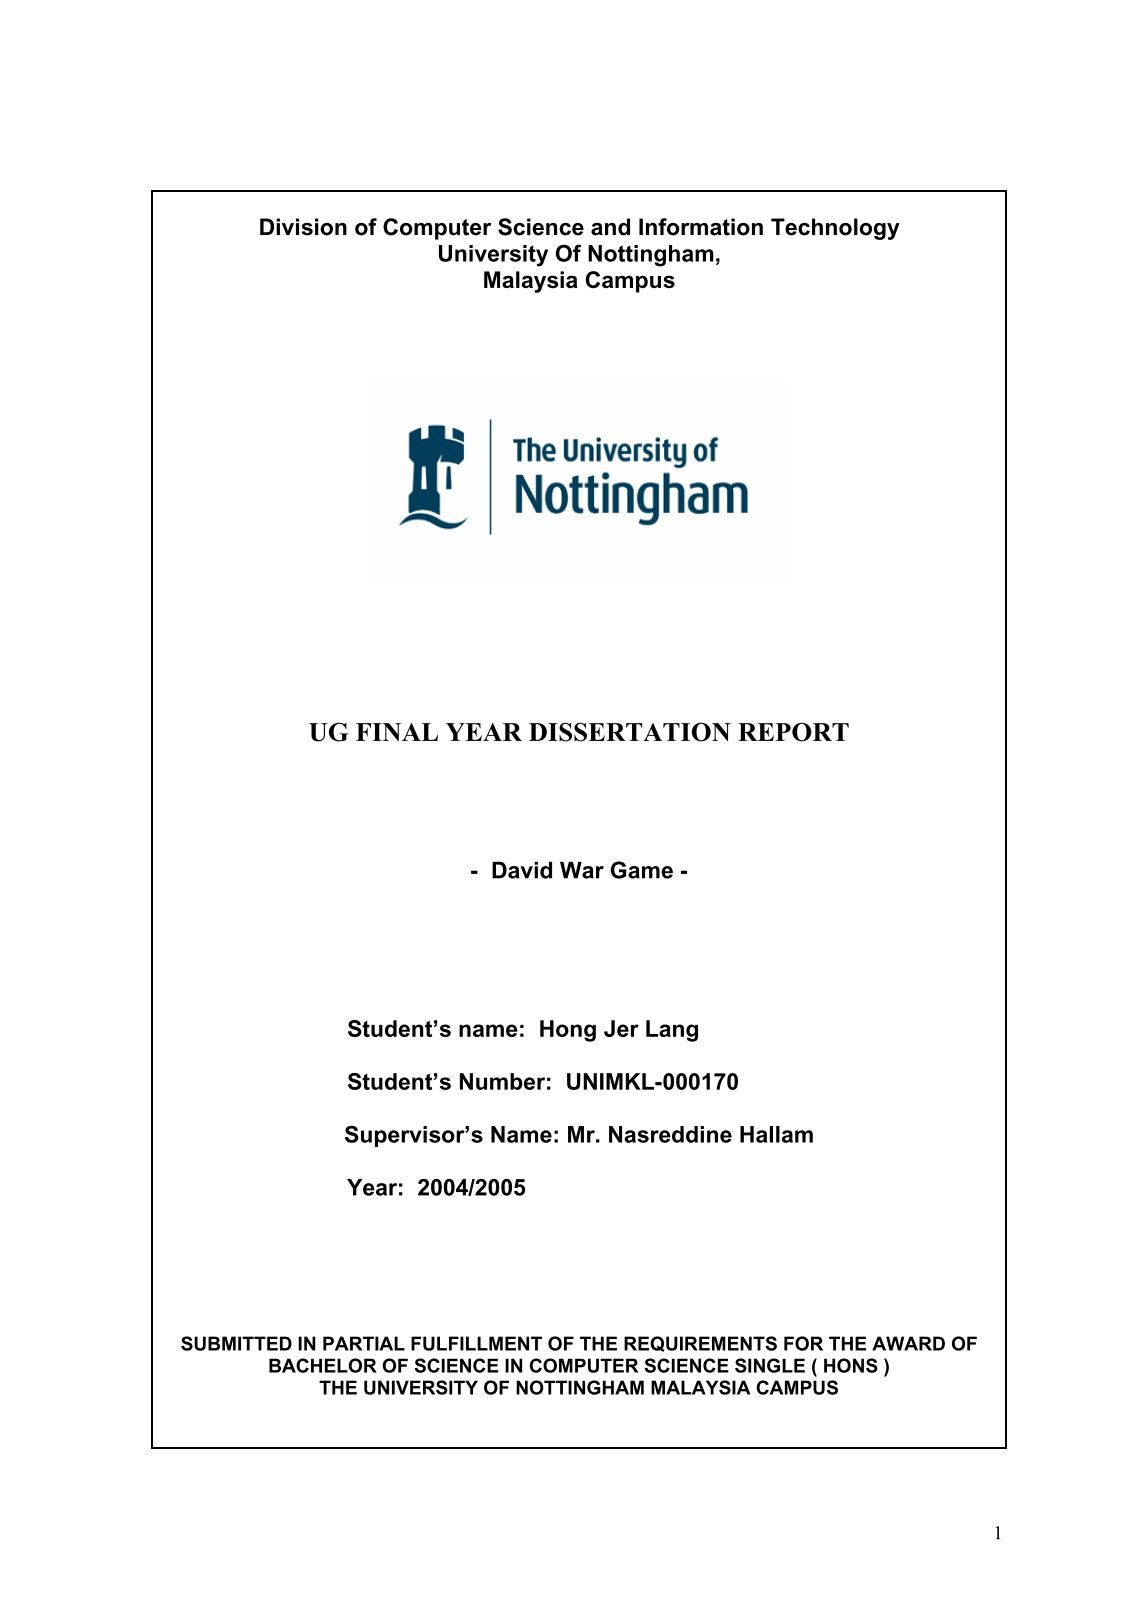 university of nottingham thesis submission Thesis submission university of nottingham ranked #1 by 10,000 plus clients for 25 years our certified resume writers have been developing compelling resumes, cover letters, professional bios, linkedin profiles and other personal branding documentation to get clients into the doors of top.